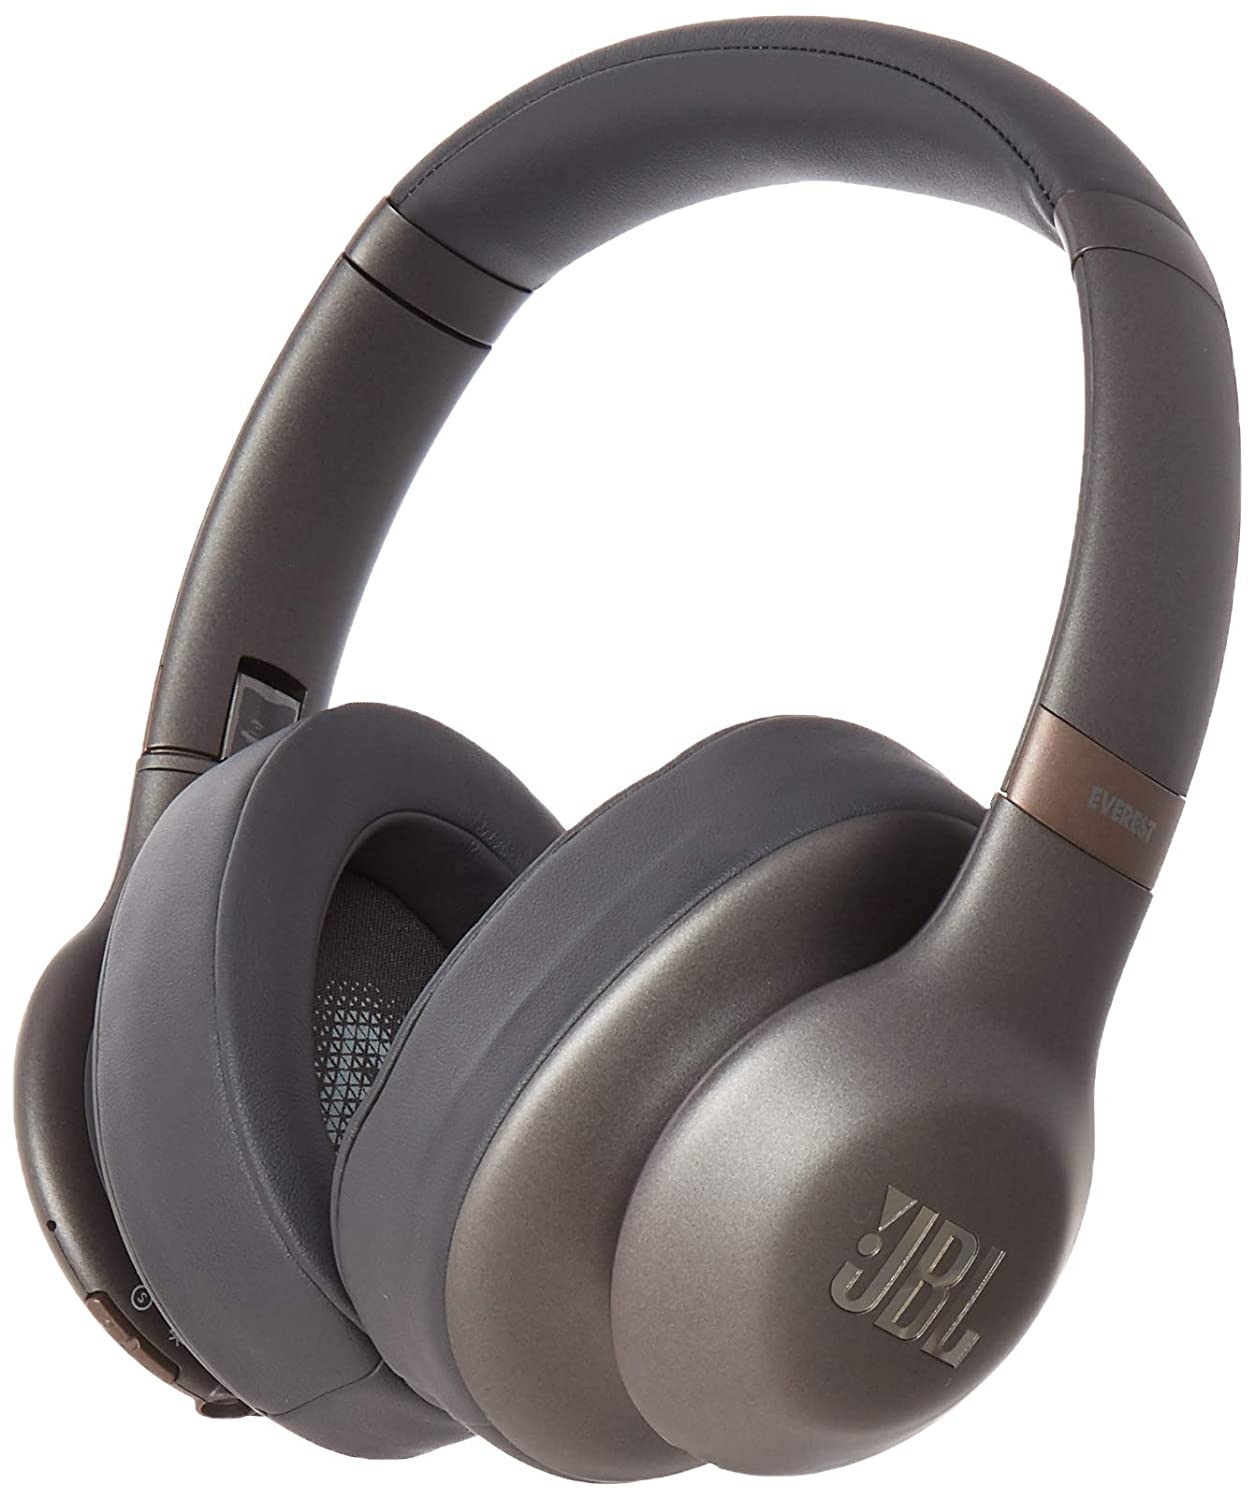 JBL headphones - better sound and better than expected